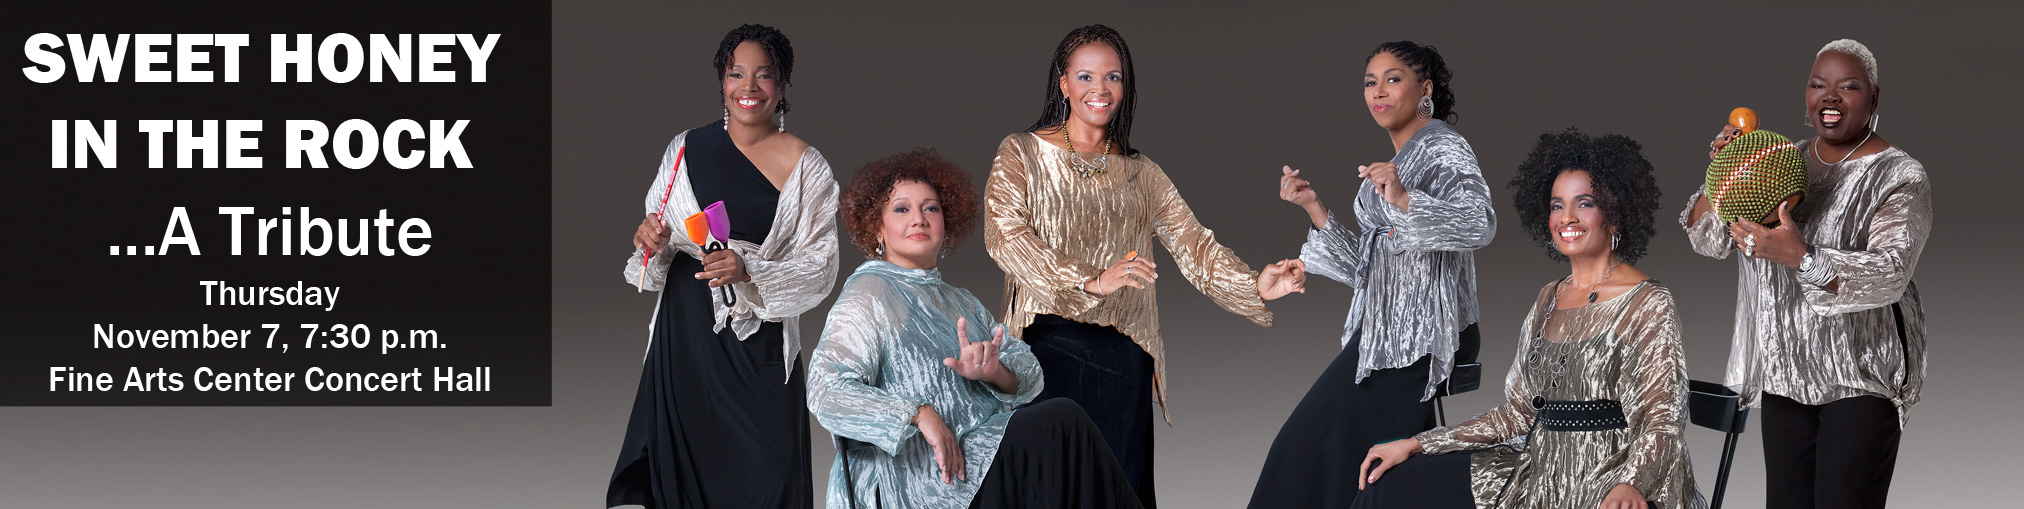 Sweet Honey In The Rock . . . A Tribute Thursday, November 7, 7:30 p.m., Fine Arts Center Concert Hall